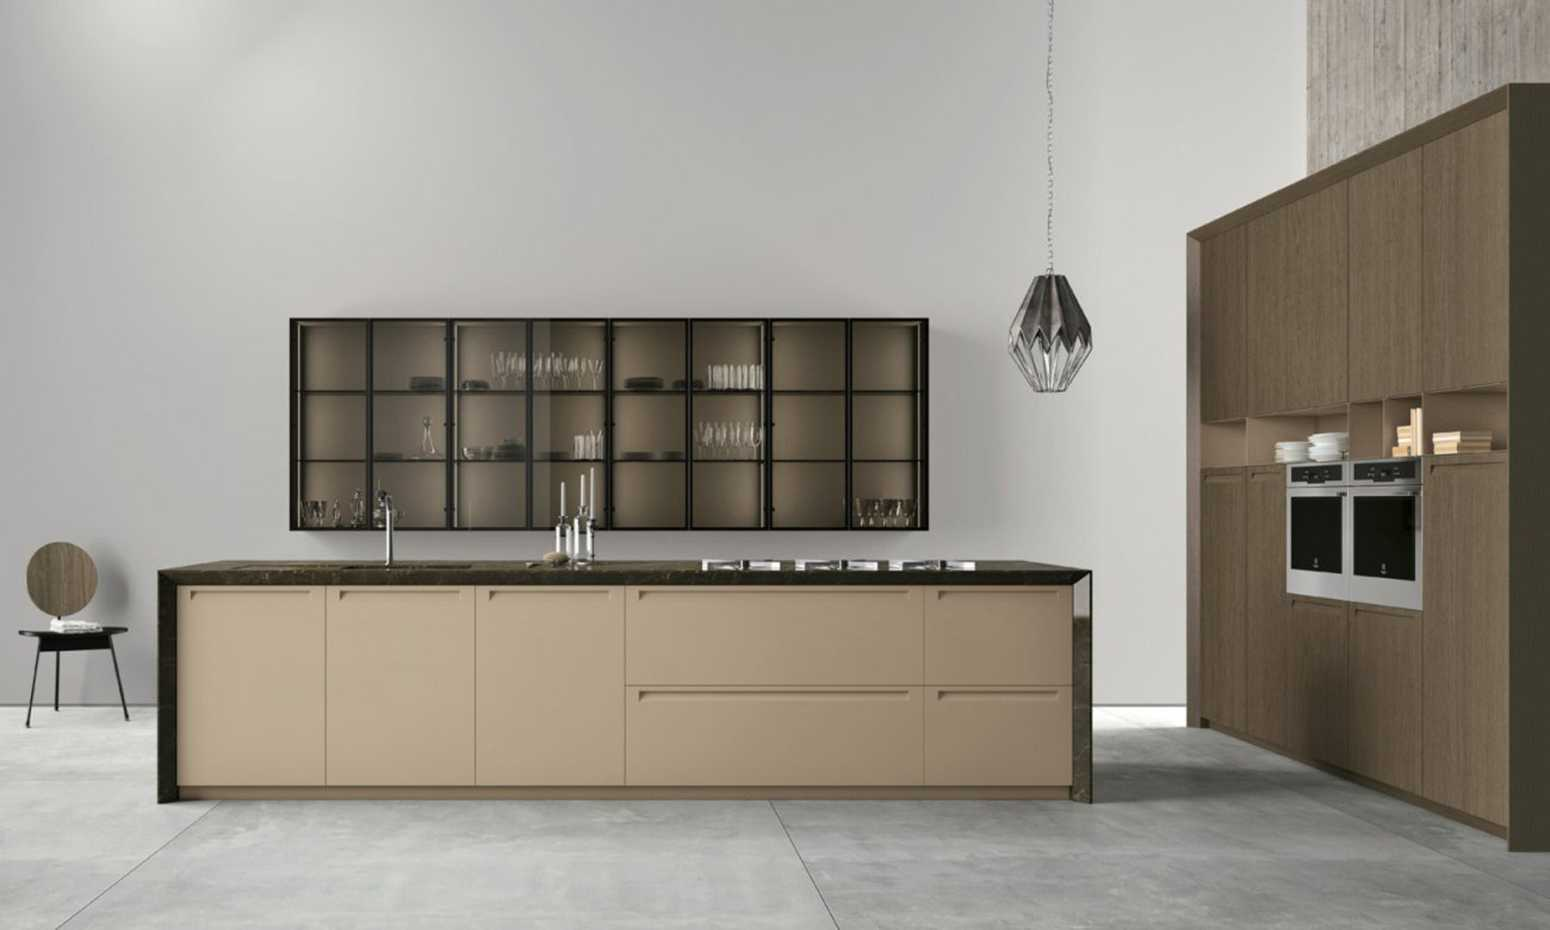 Extra by Doimo Cucine product image 7